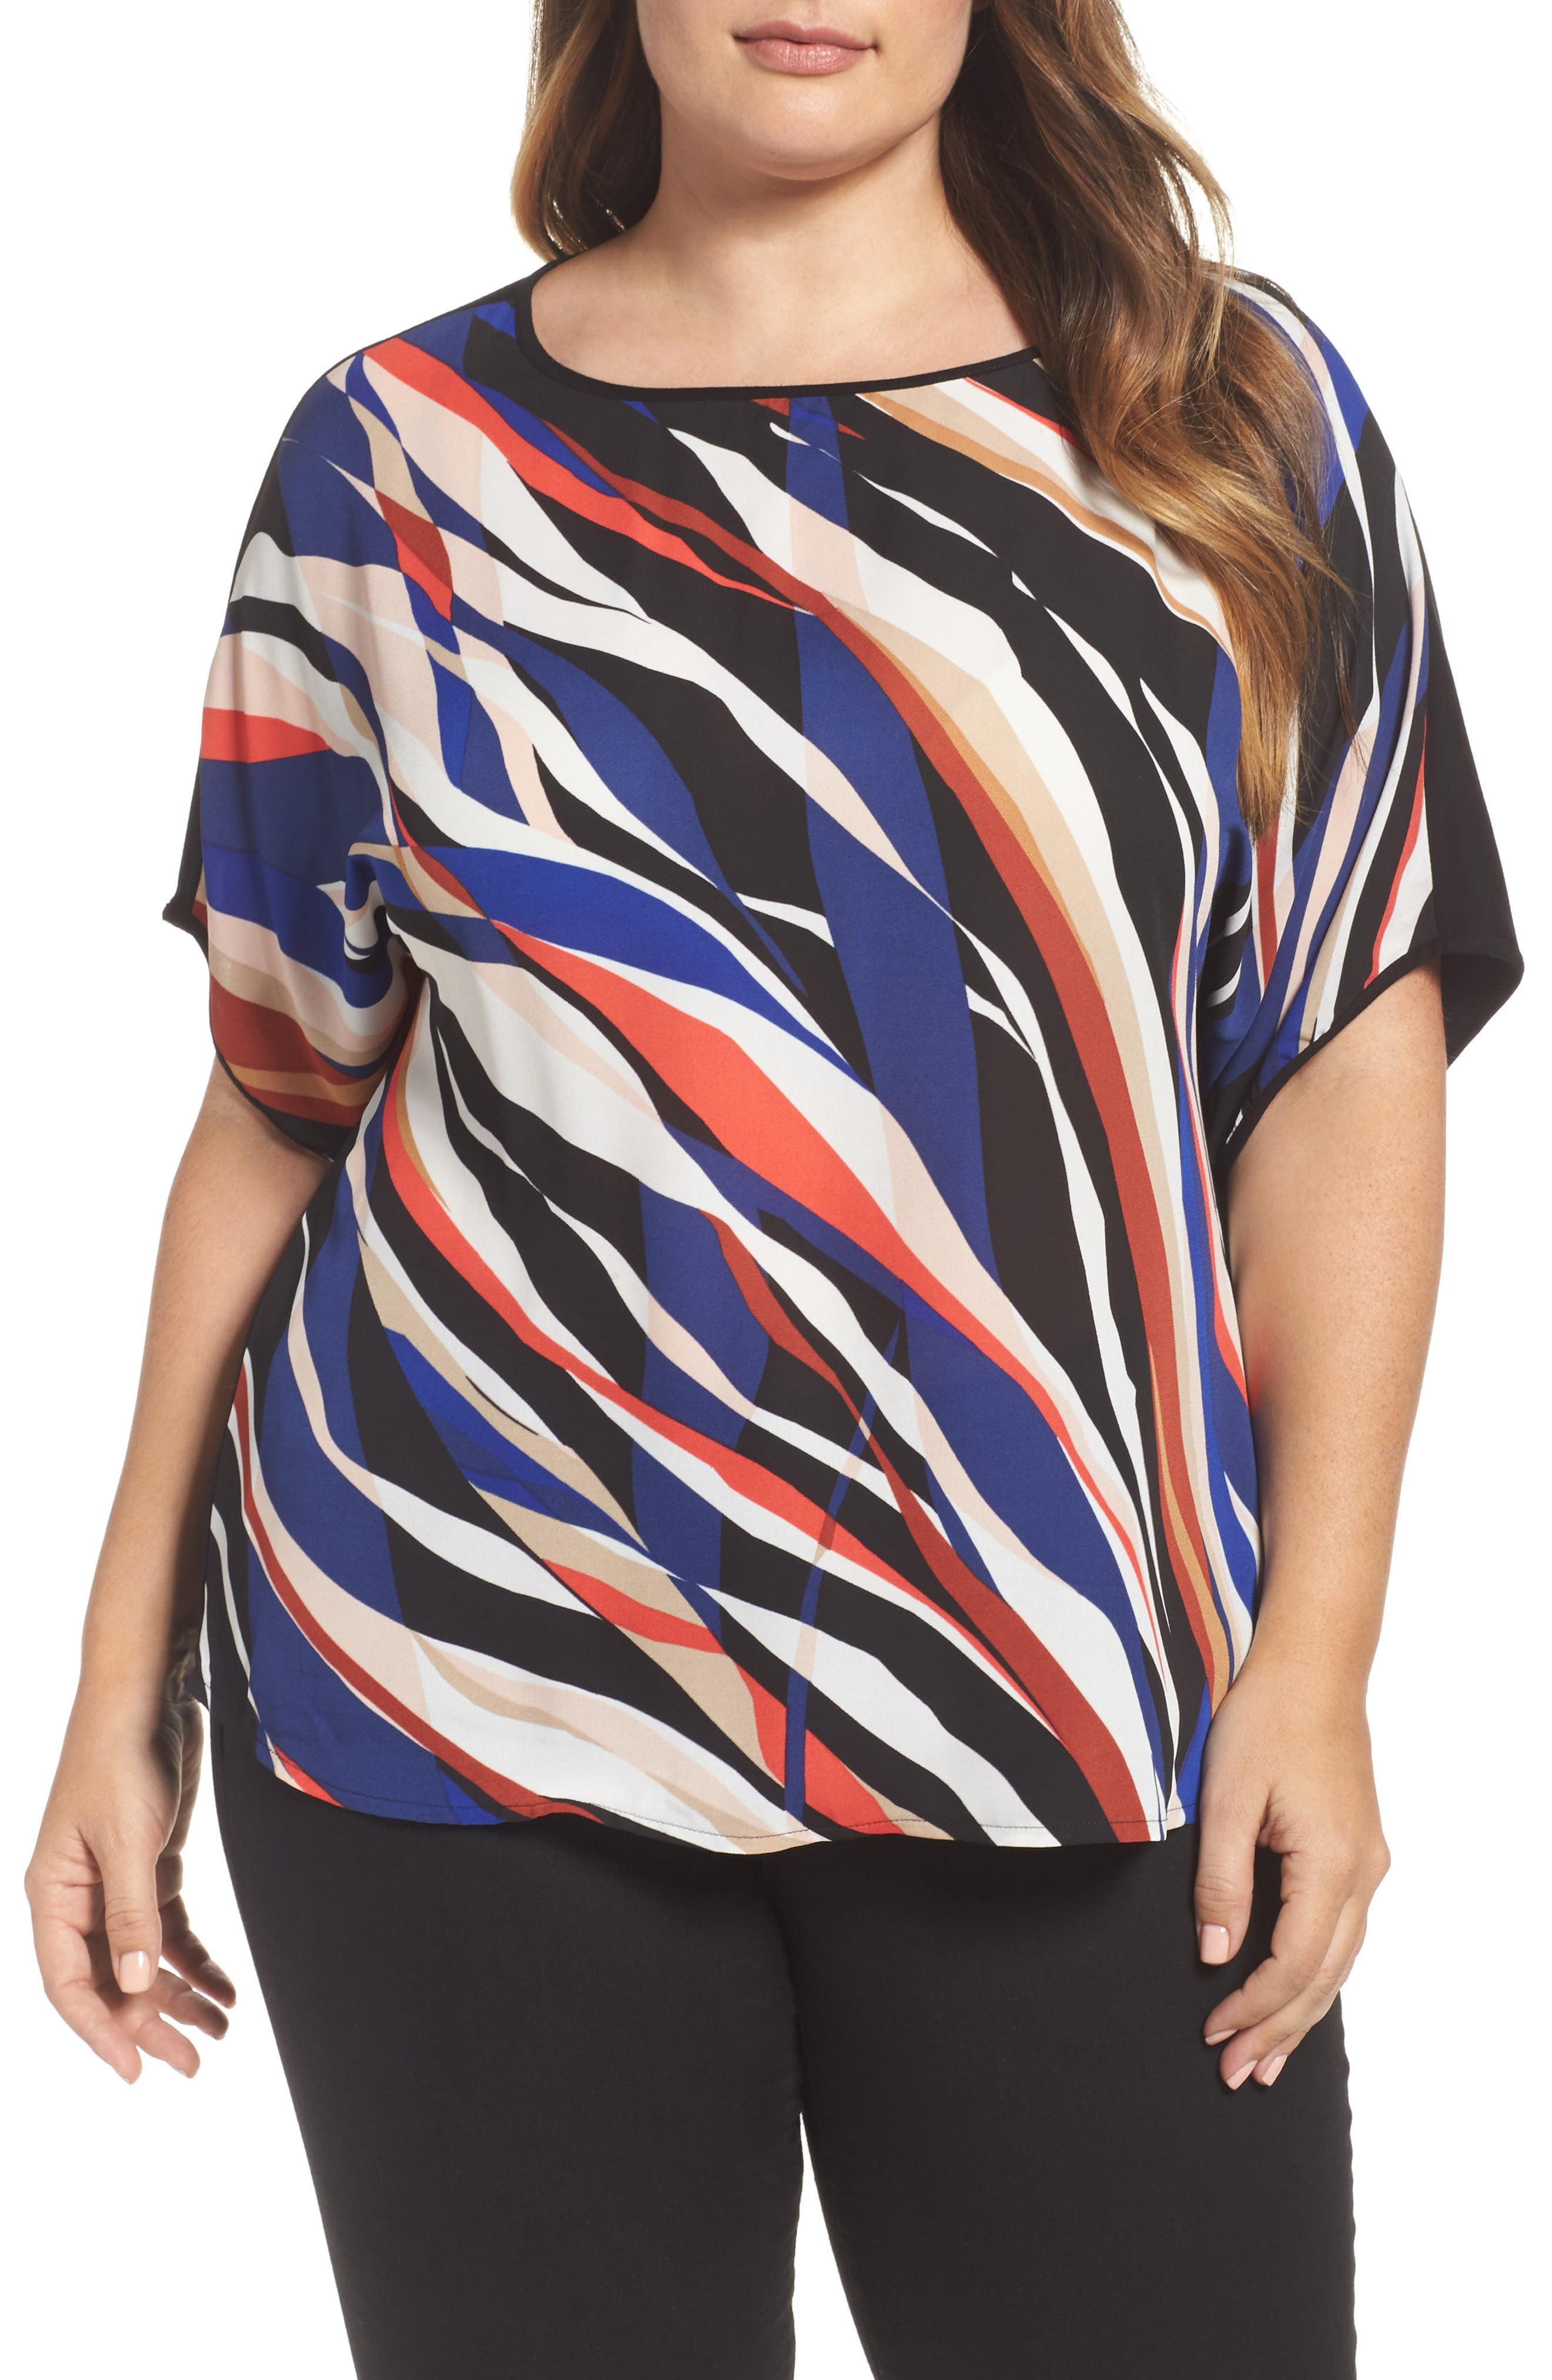 Vince Camuto Graphic Zebra Dolman Tee (Plus Size)